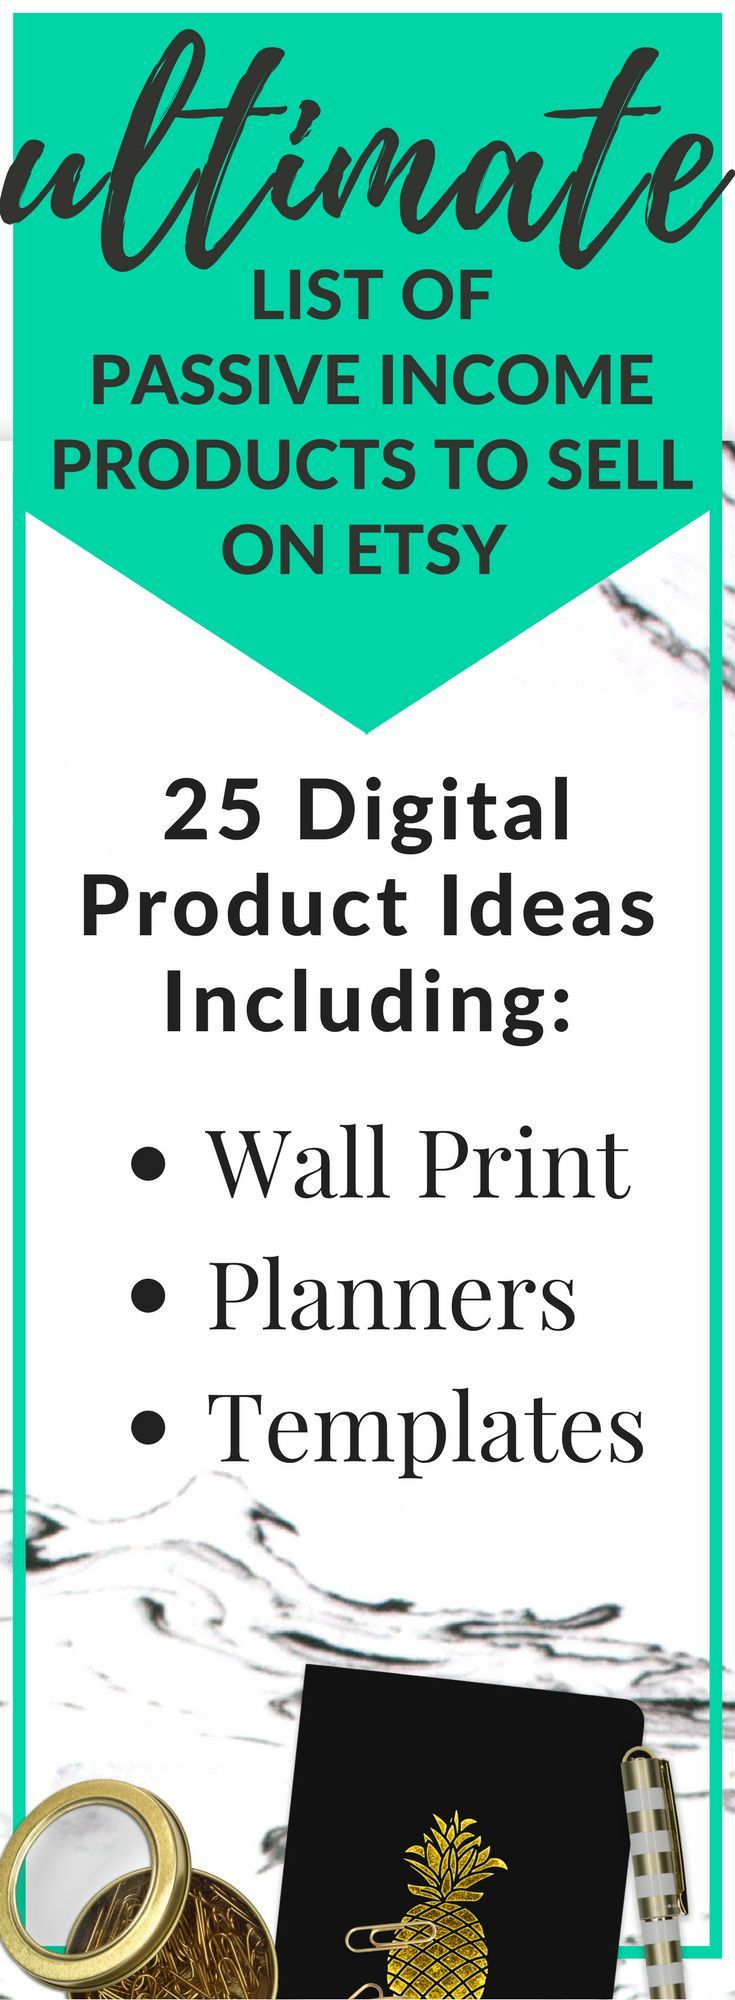 25 Passive Income Products To Sell On Etsy #craftstosell